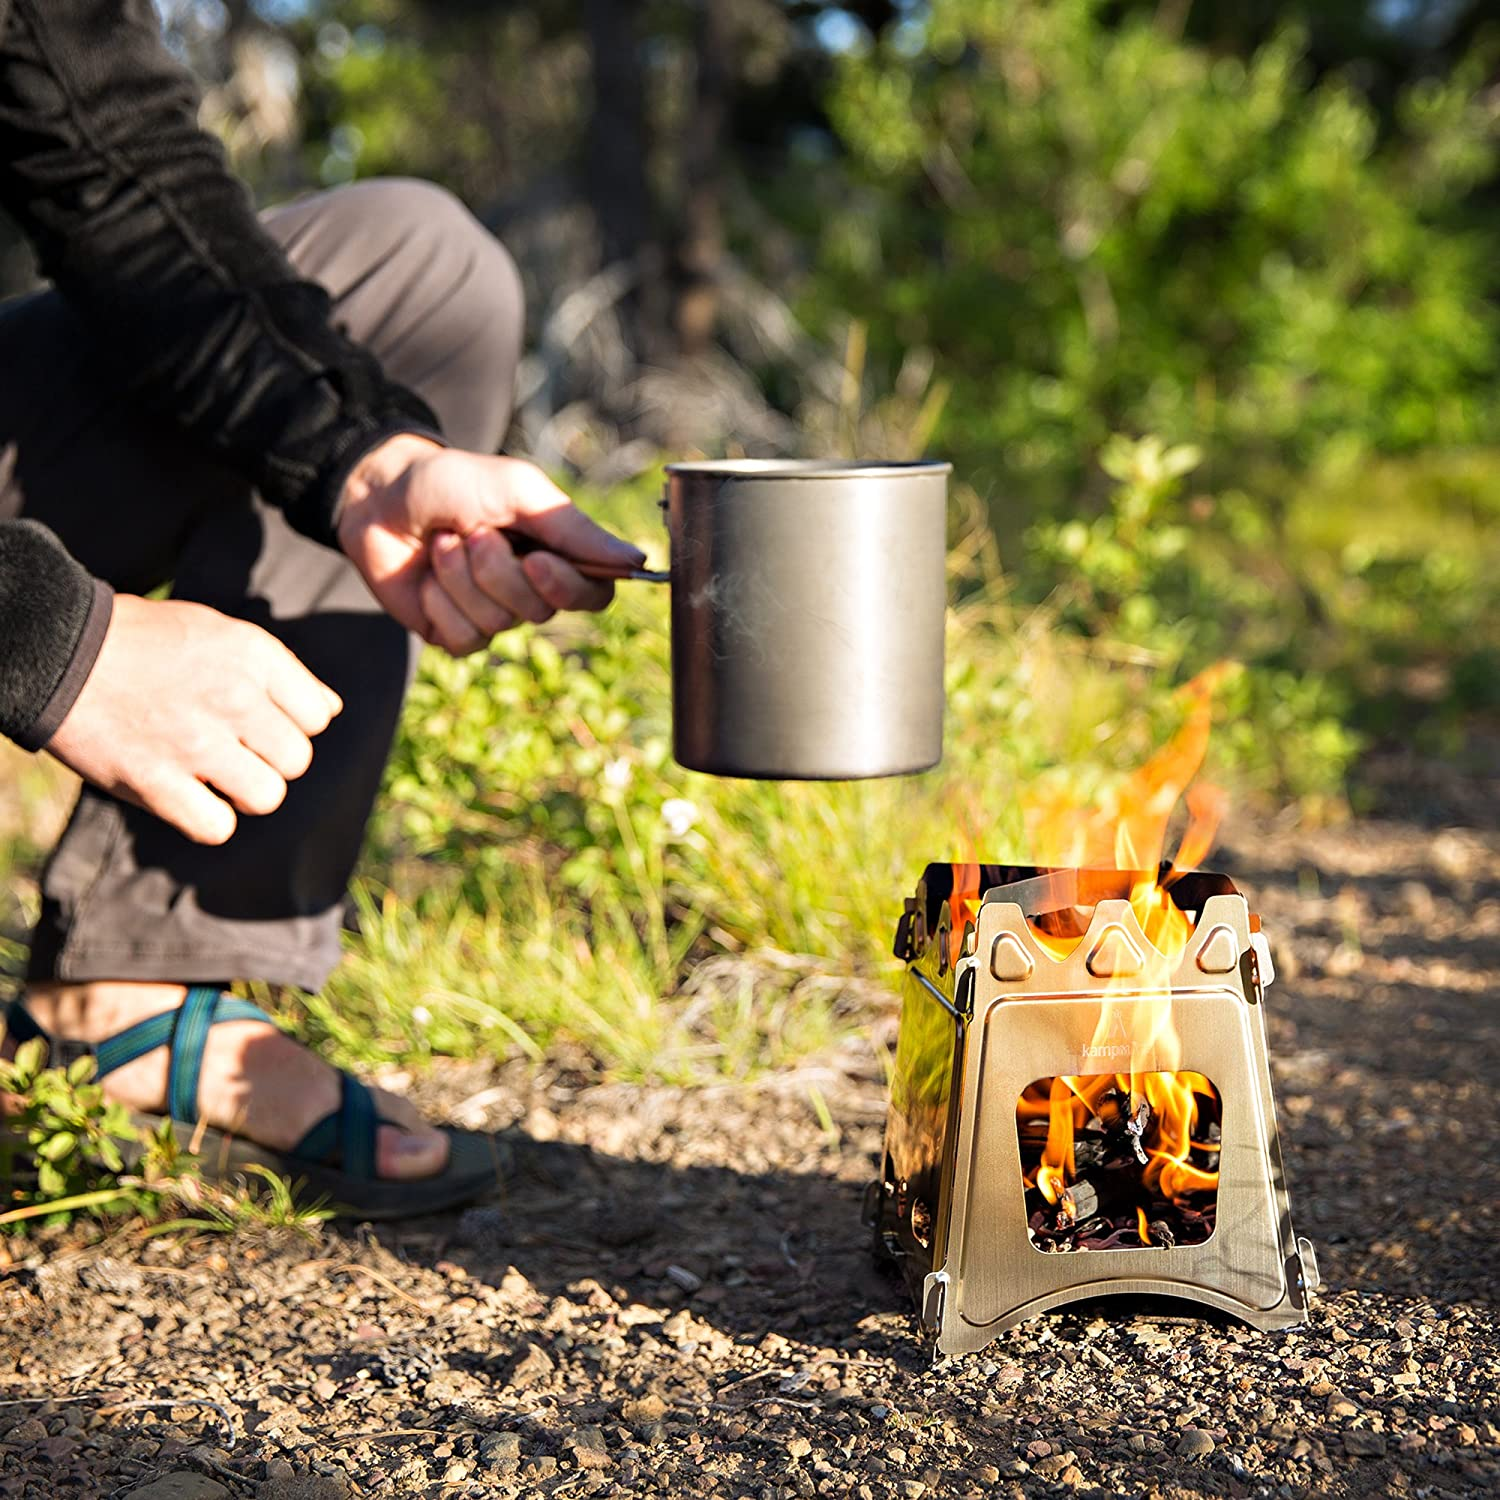 kampMATE WoodFlame Ultra Lightweight Portable Wood Burning Camping Stove Perfect for Survival Packs /& Emergency Preparedness Backpacking Stove Stainless Steel with Nylon Carry Case